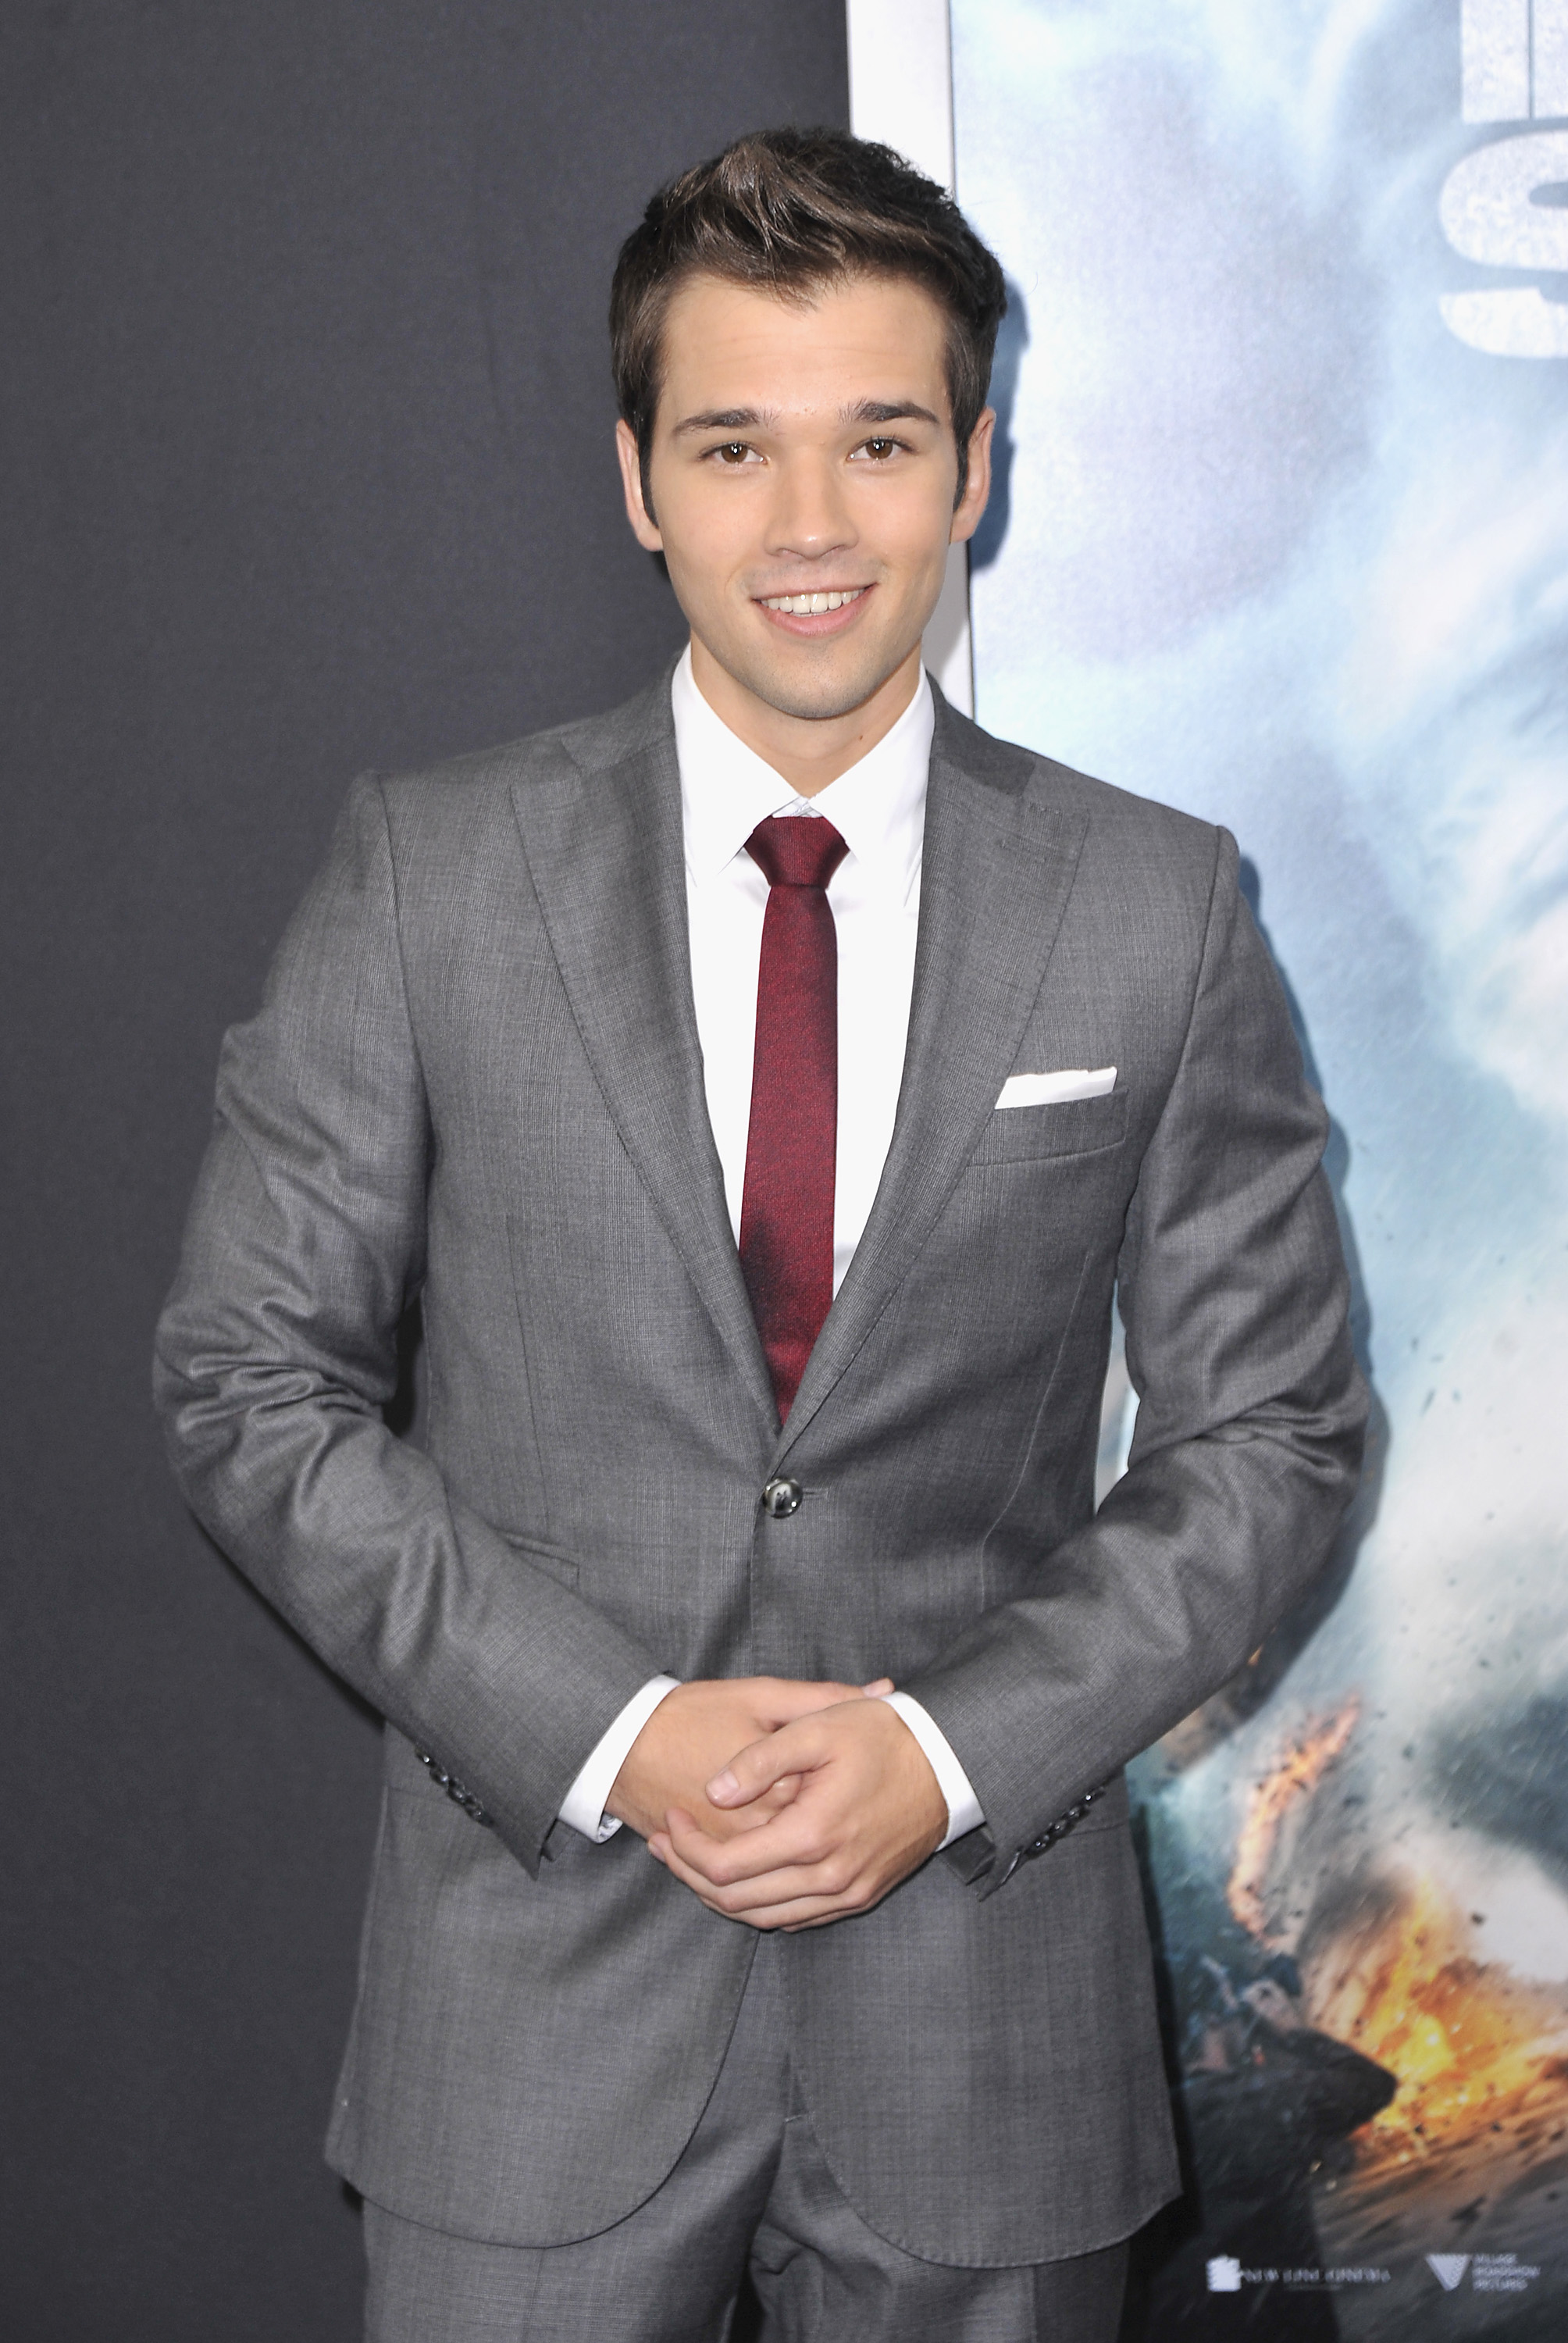 Nathan Kress Wedding.Photos Of London Elise Moore Nathan Kress Wedding Just